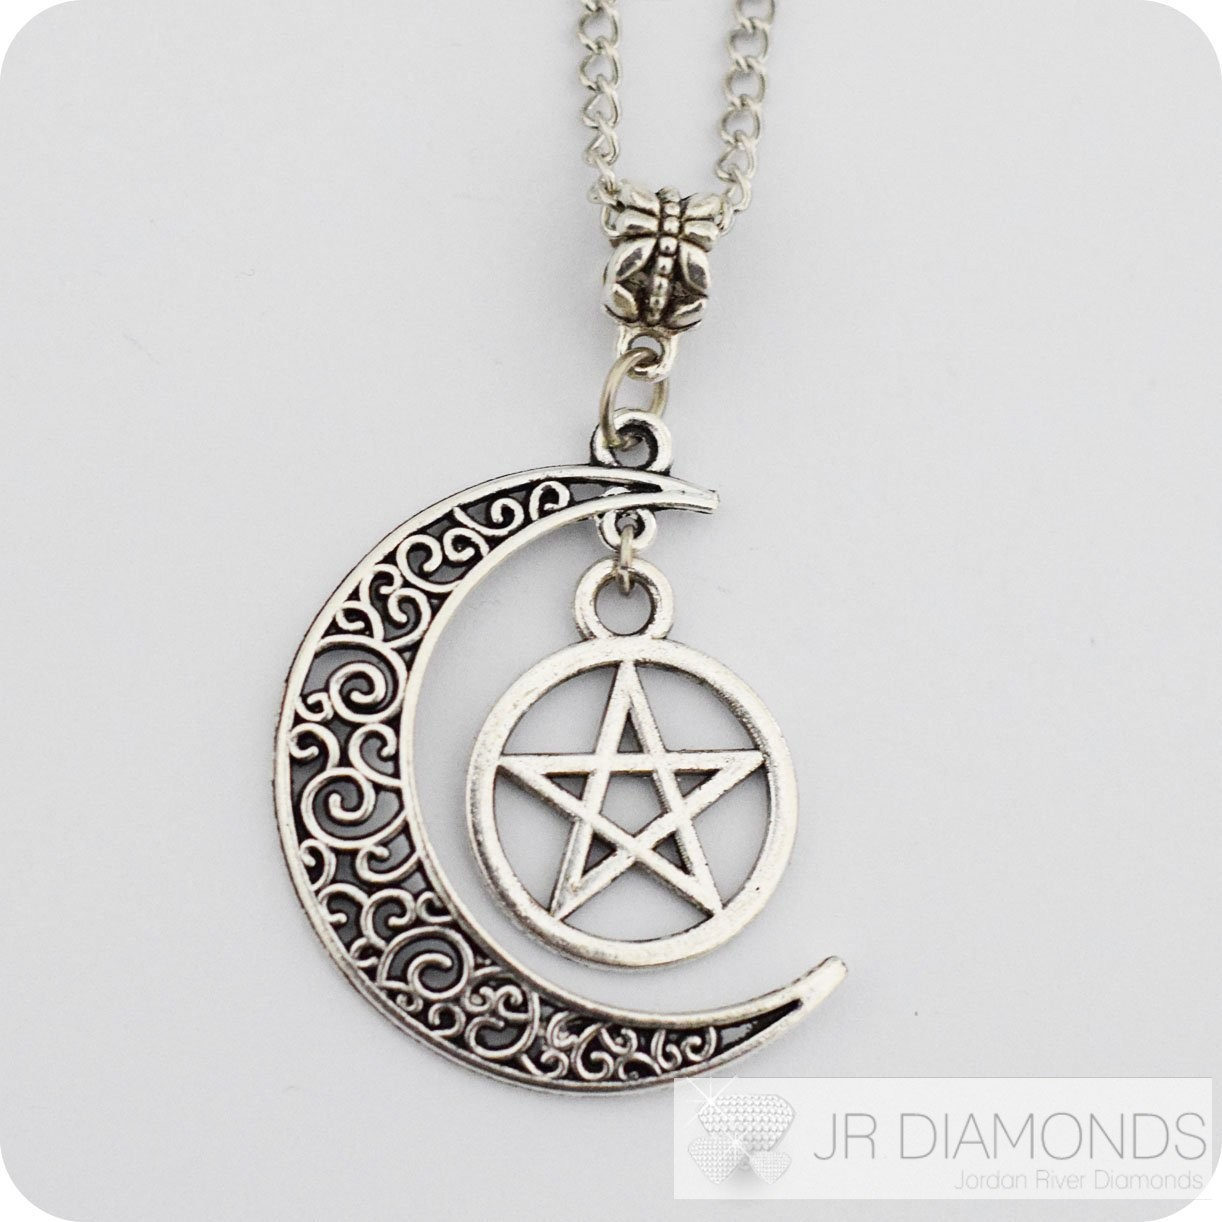 own silver crescent moon pendant wiccan jewelry pentacle